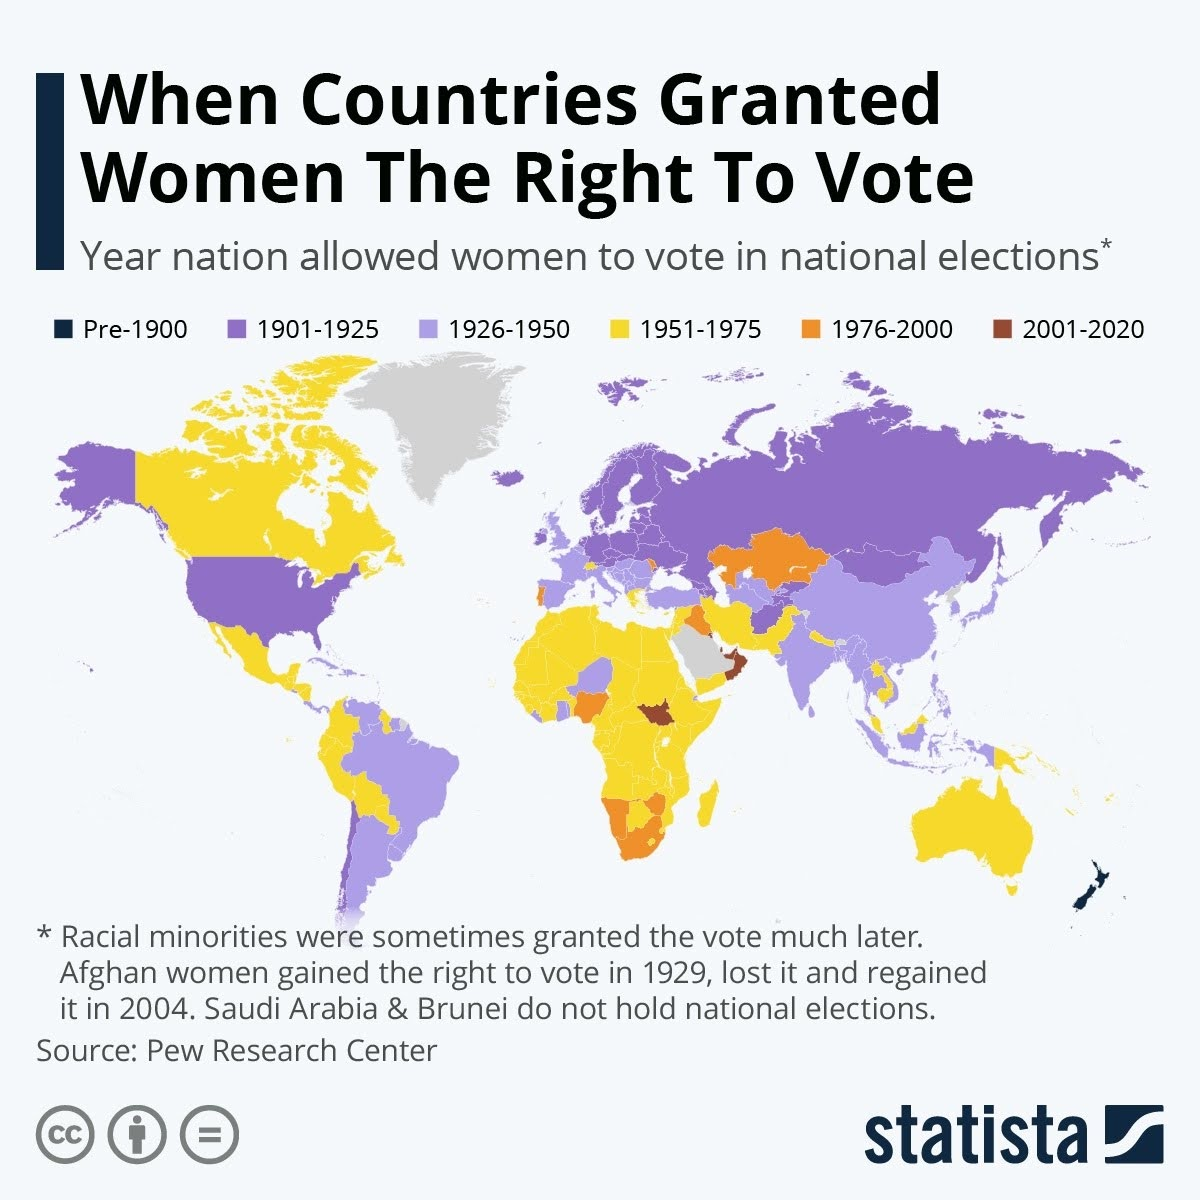 when-countries-granted-women-the-right-to-vote-infographic